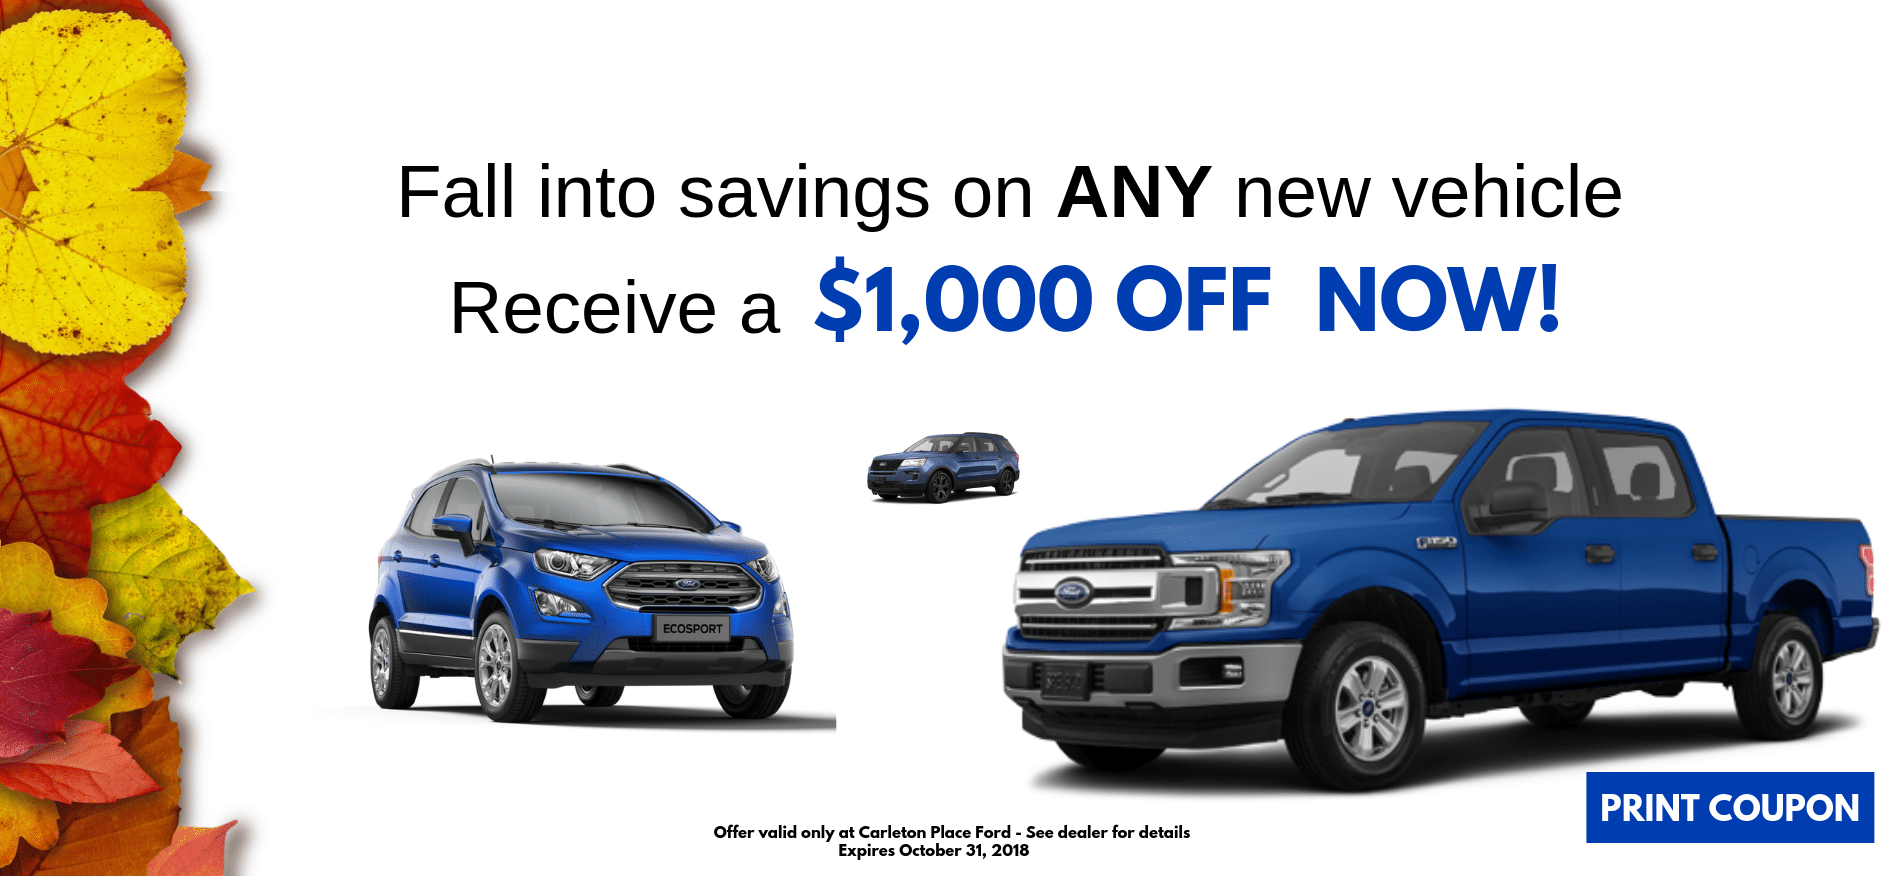 October $1,000 Off New Vehicle Offer on any NEW Vehicle